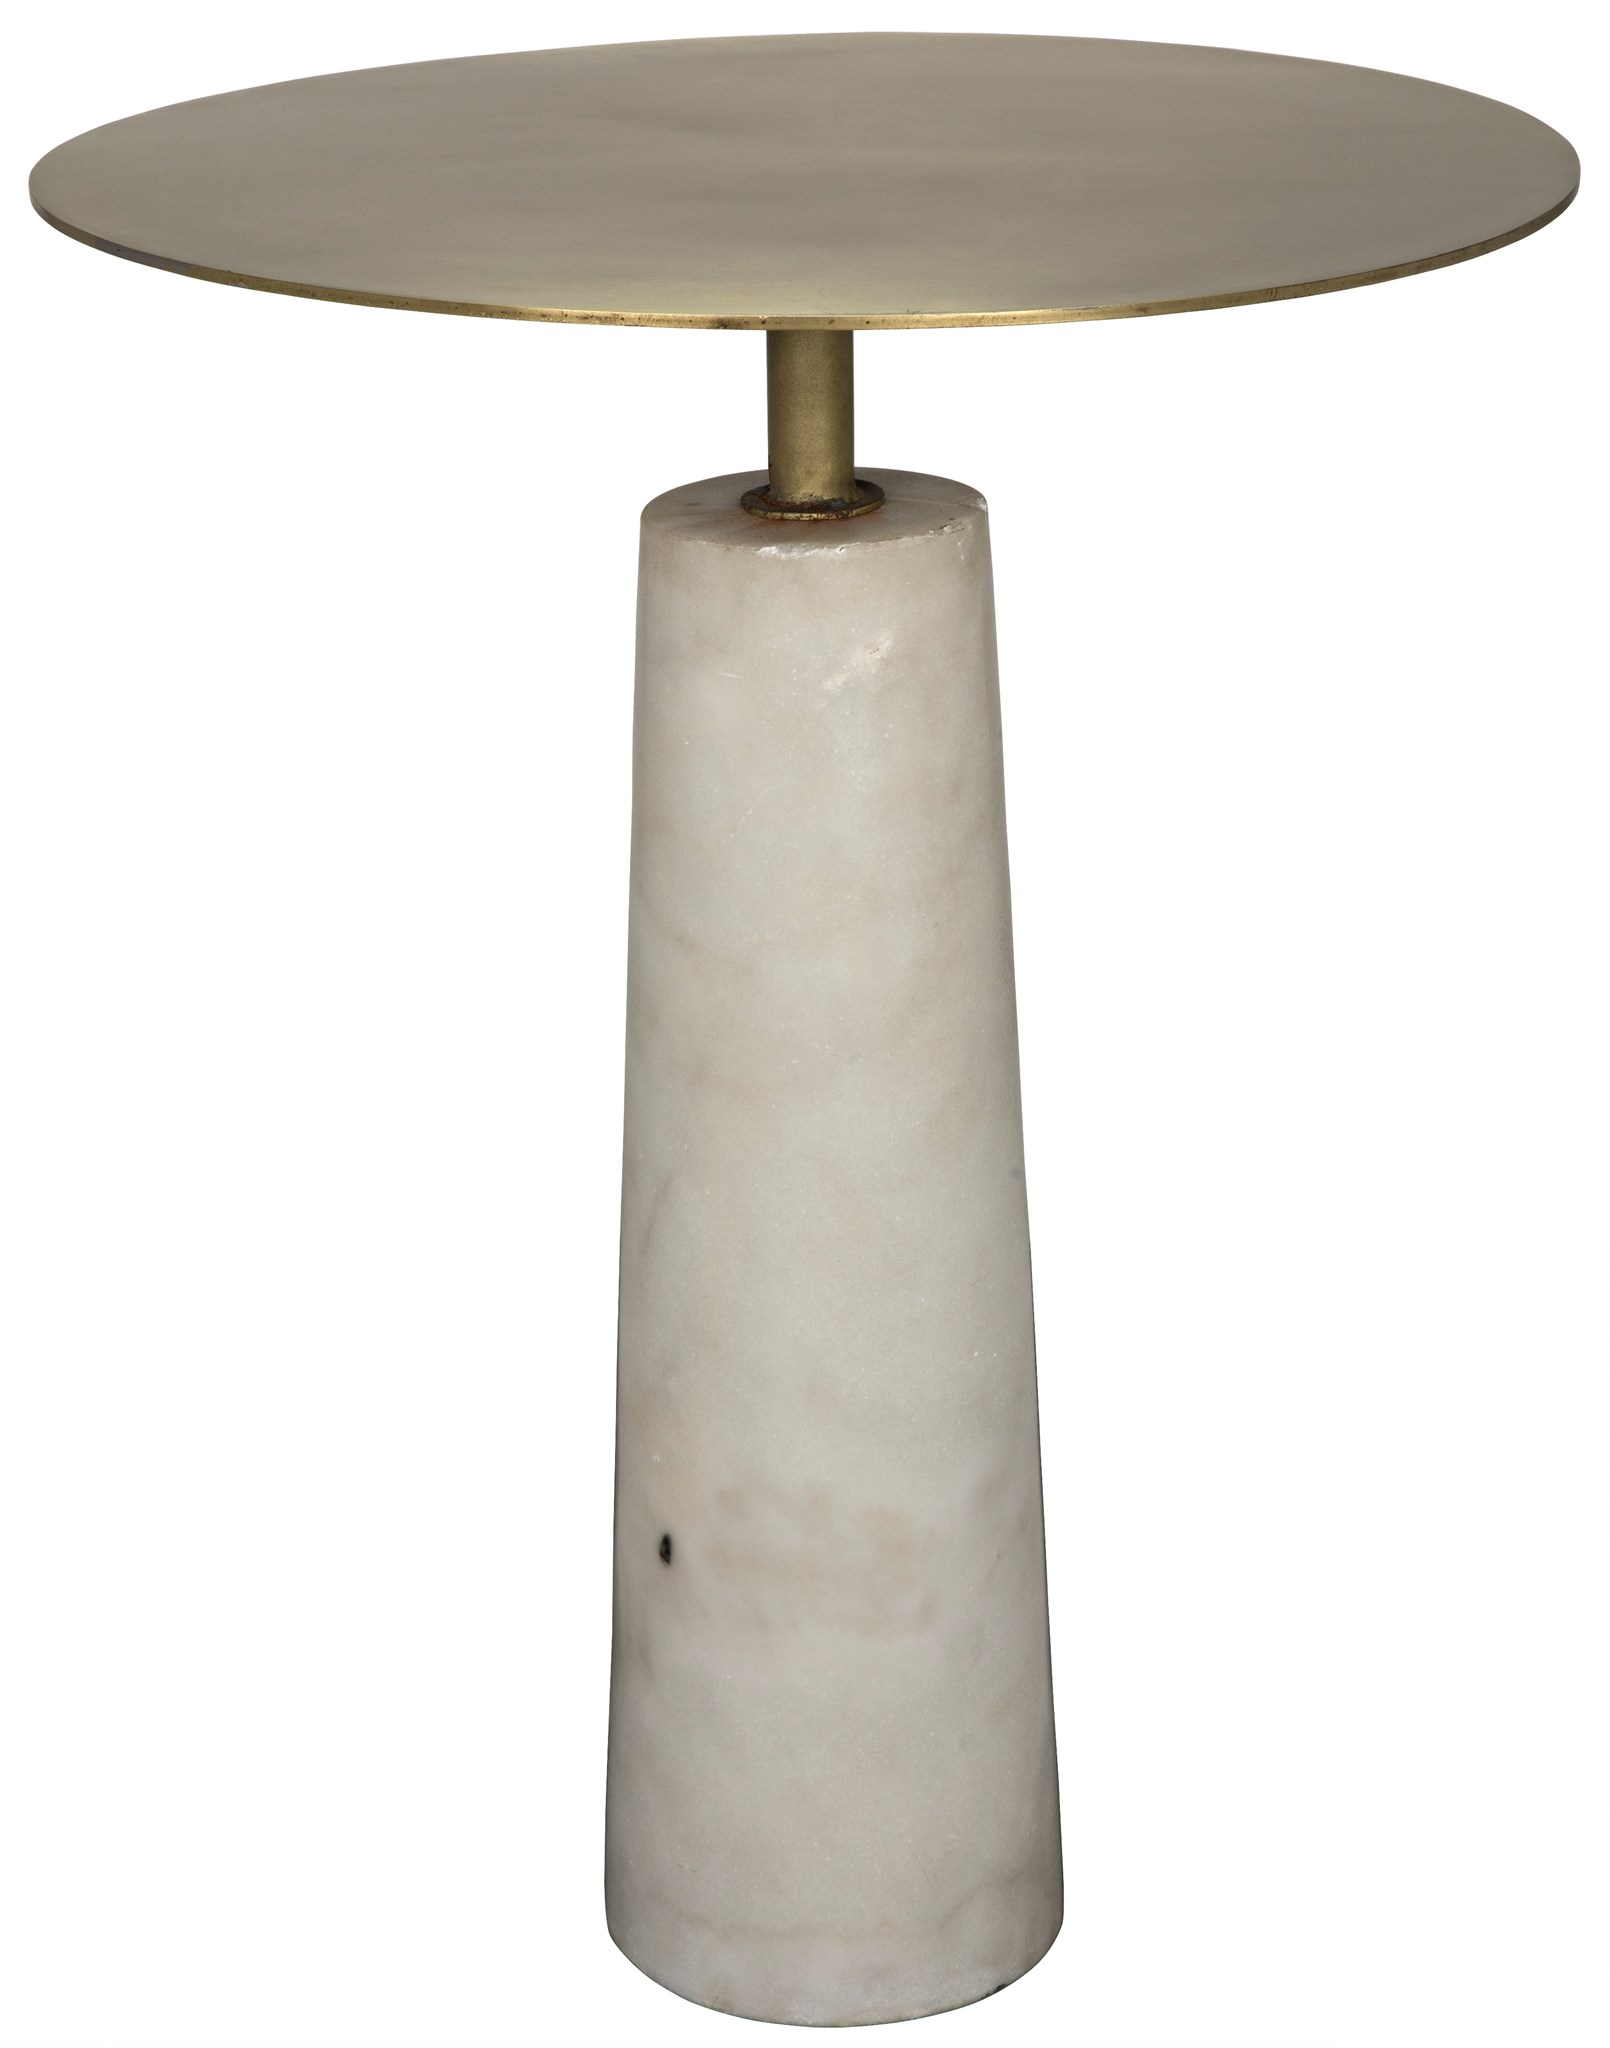 Delicieux Hotaru Side Table, White Marble And Antique Brass